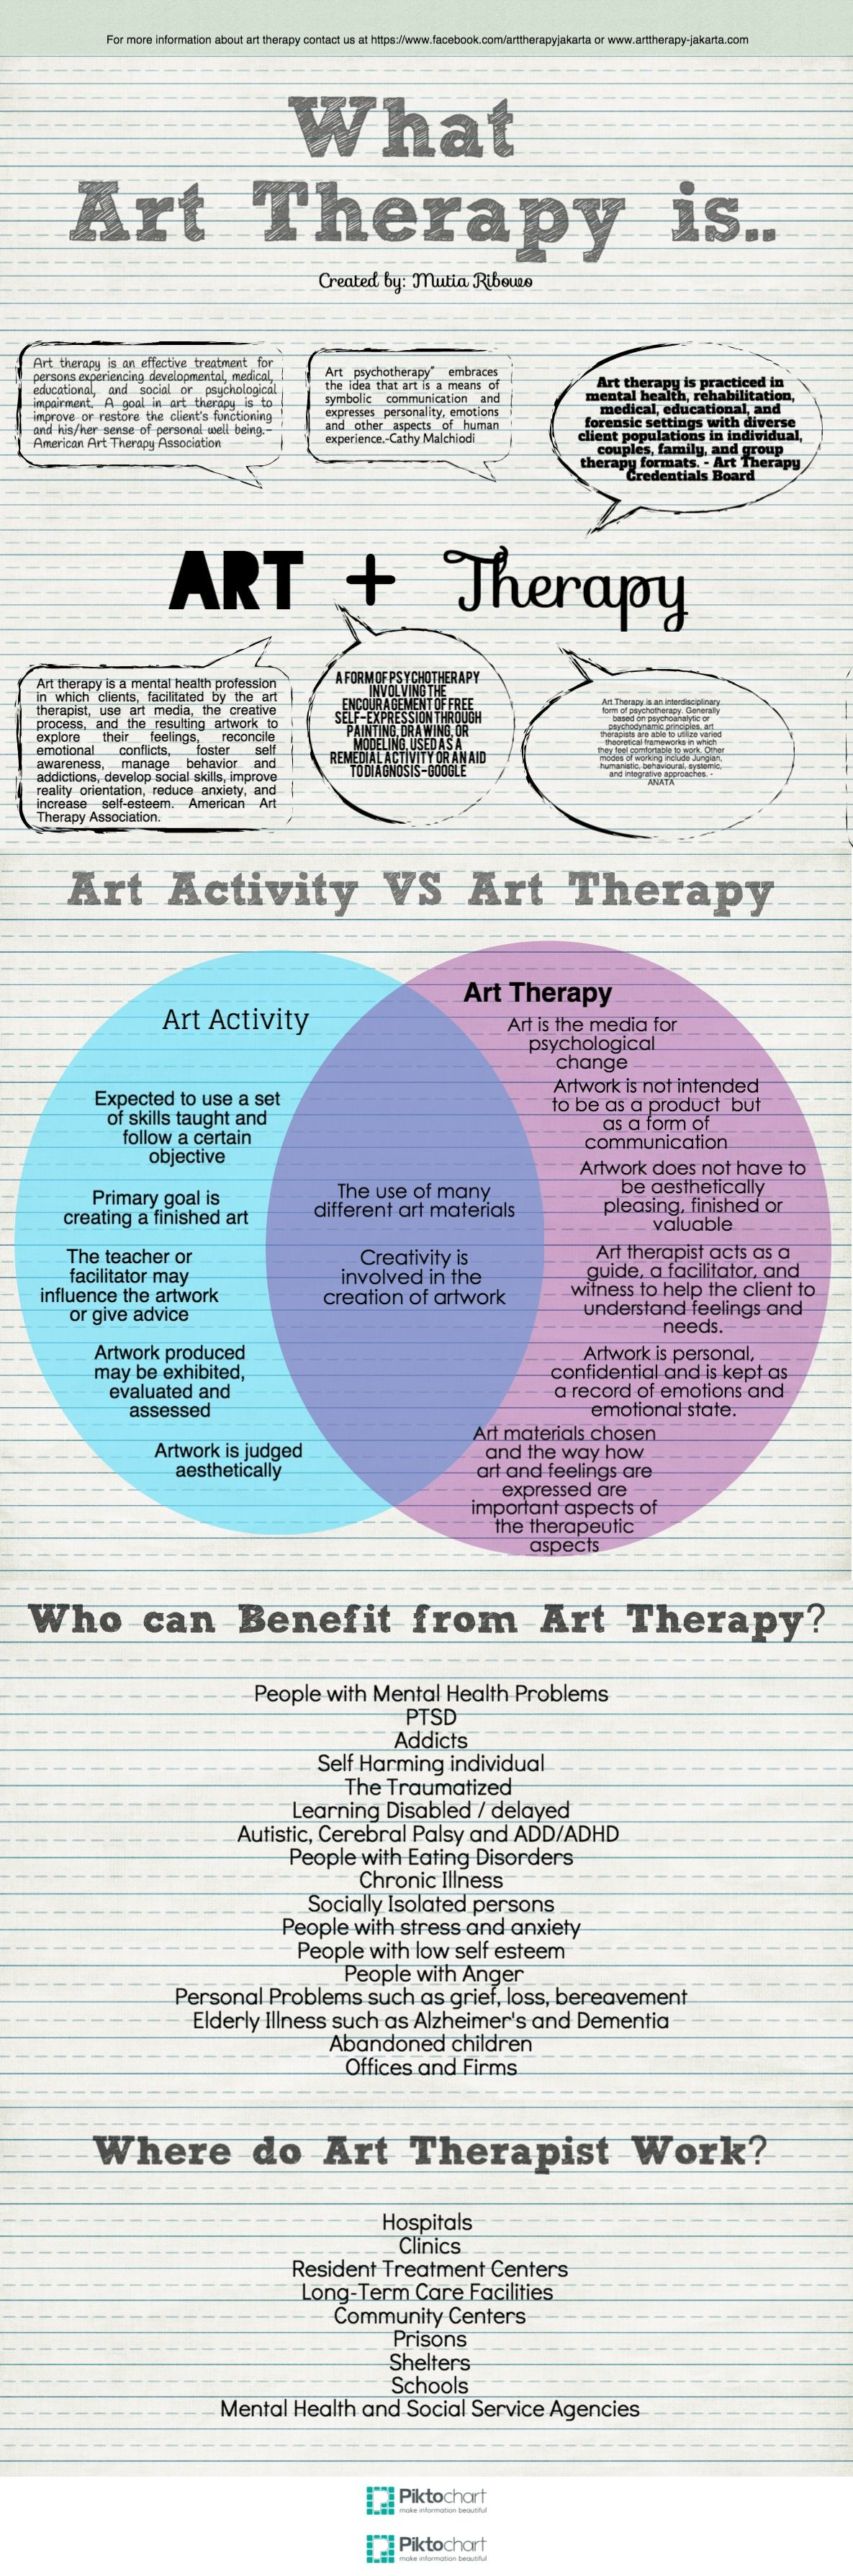 Information About Art Therapy How Art Therapy Differ From Art Activities And Who Can Benefit